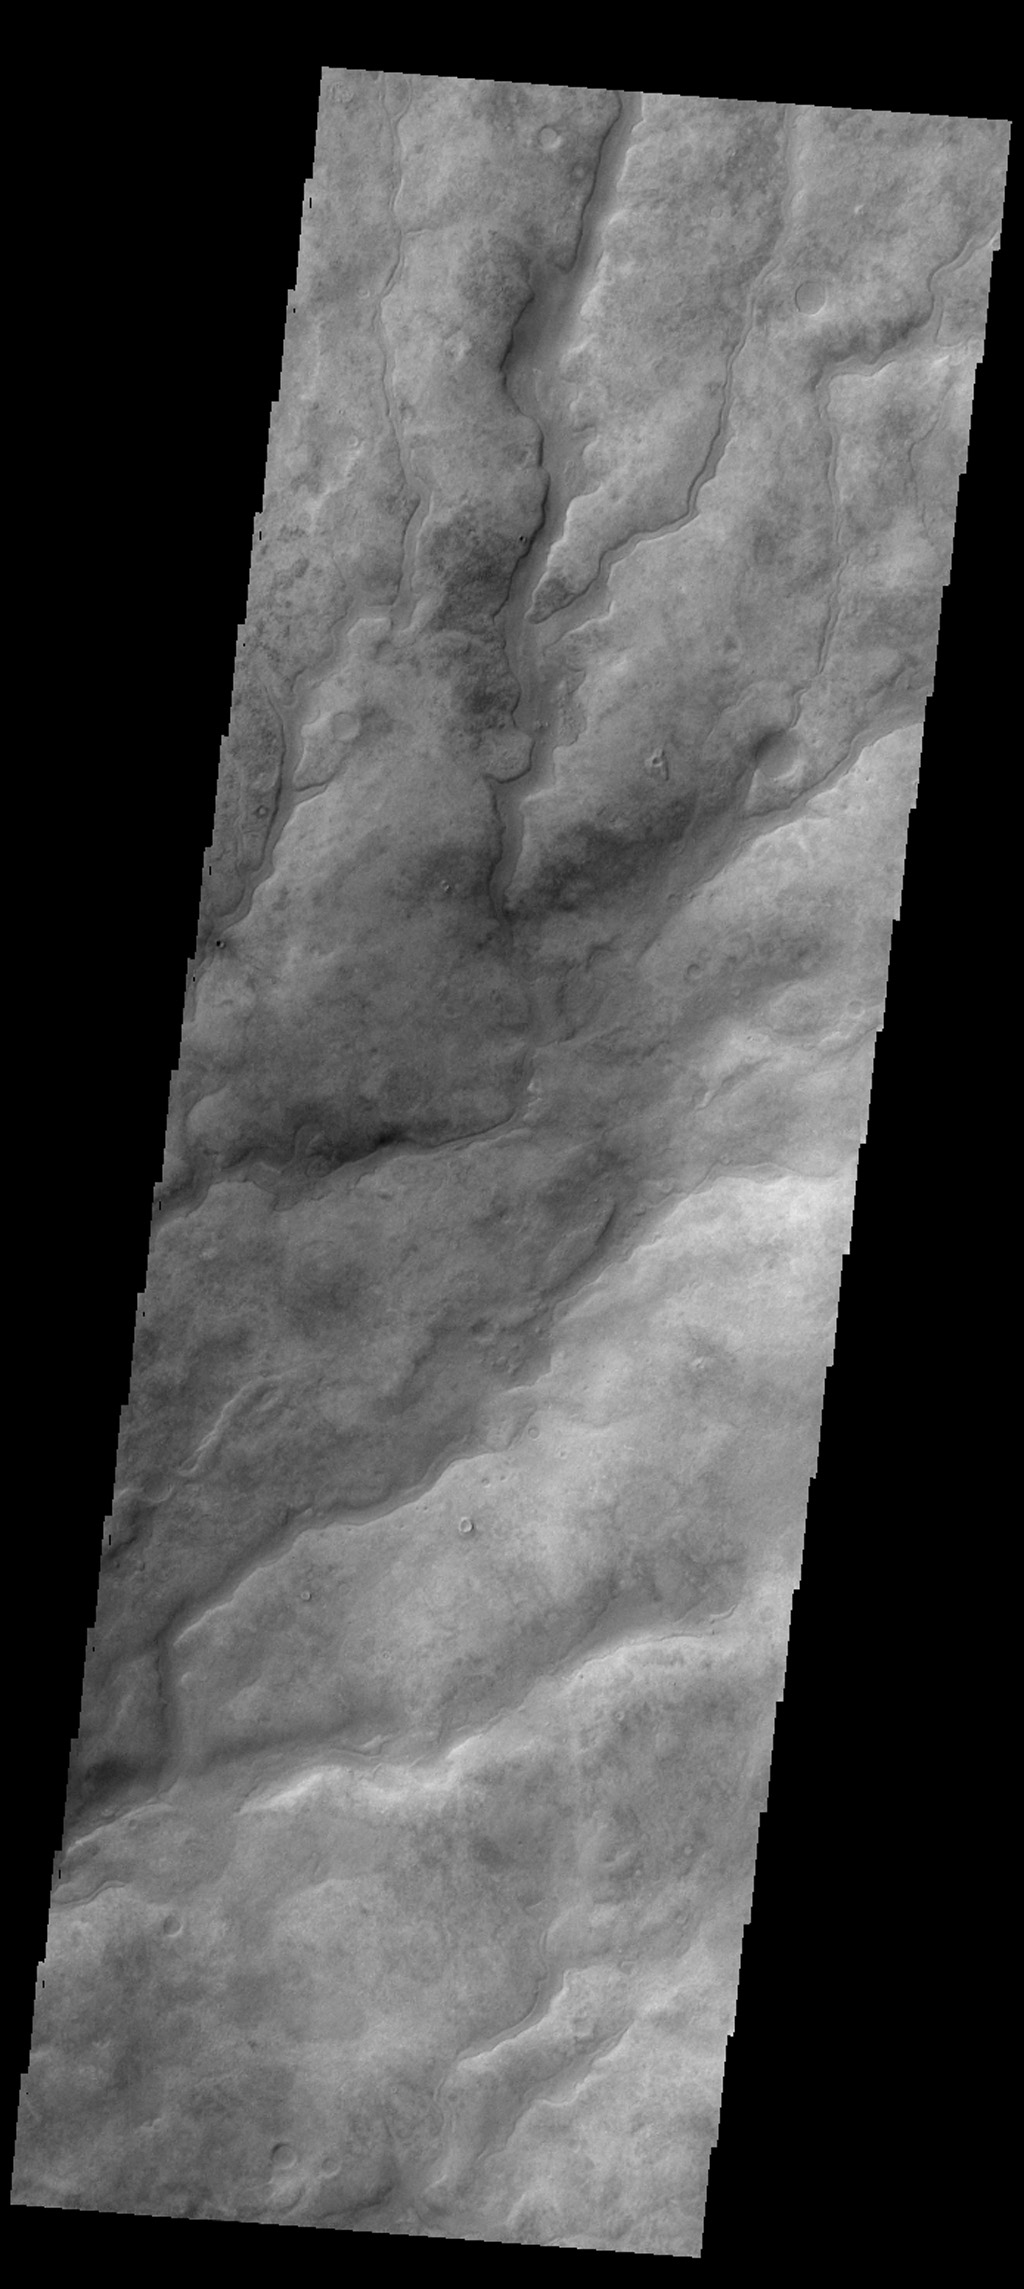 The numerous valleys in this image captured by NASA's 2001 Mars Odyssey spacecra are dissecting part of Aonia Terra.